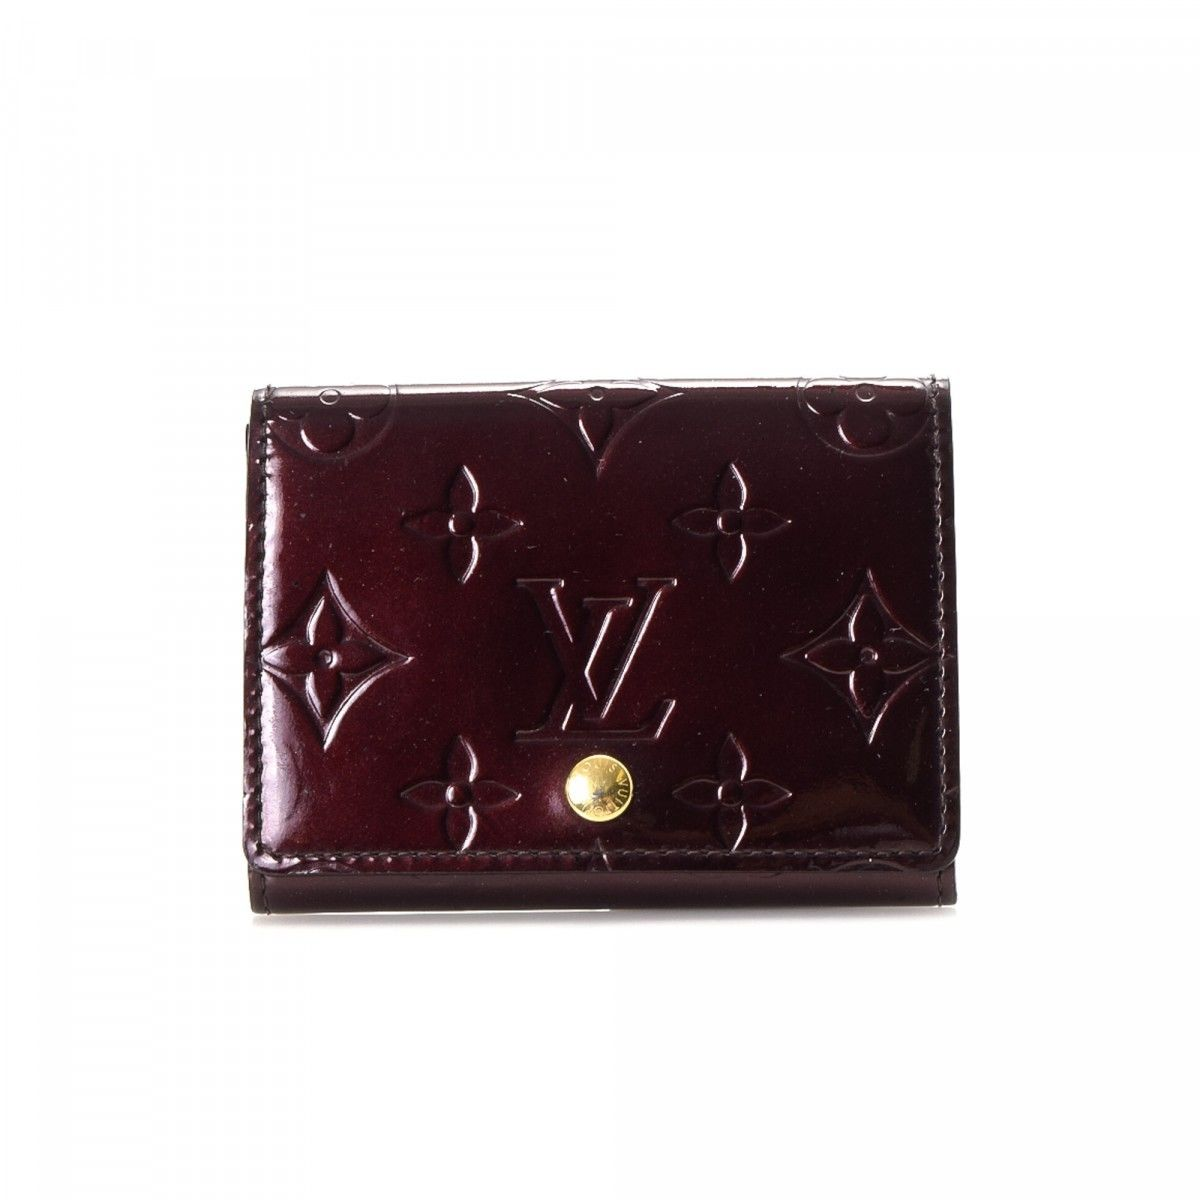 Louis vuitton business card holder vernis patent leather louis vuitton business card holder vernis patent leather lxrandco pre owned luxury vintage magicingreecefo Choice Image